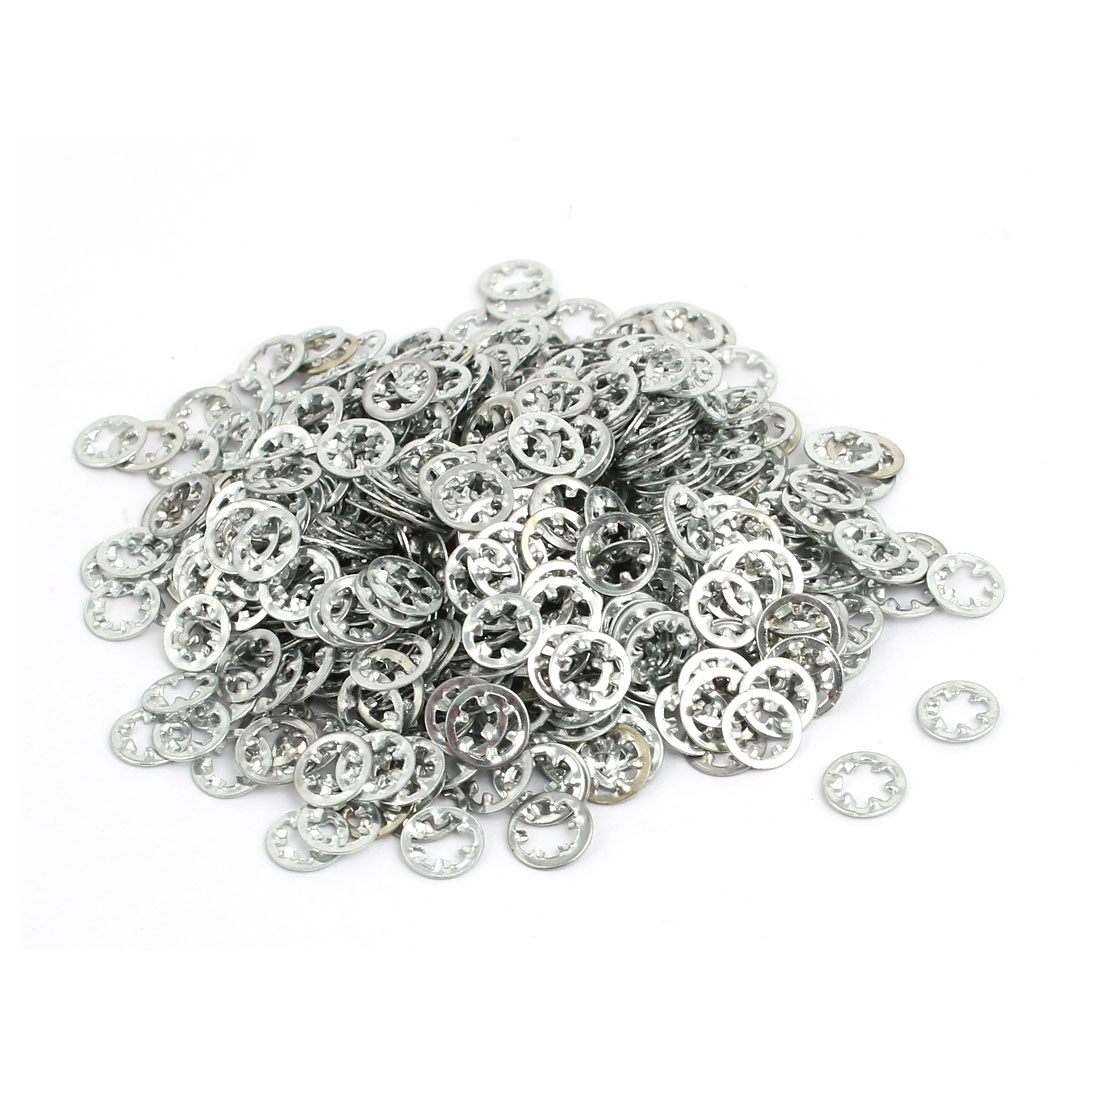 3mm Inner Dia Carbon Steel Zinc Plated Internal Tooth Lock Washer 1000pcs - image 2 of 2